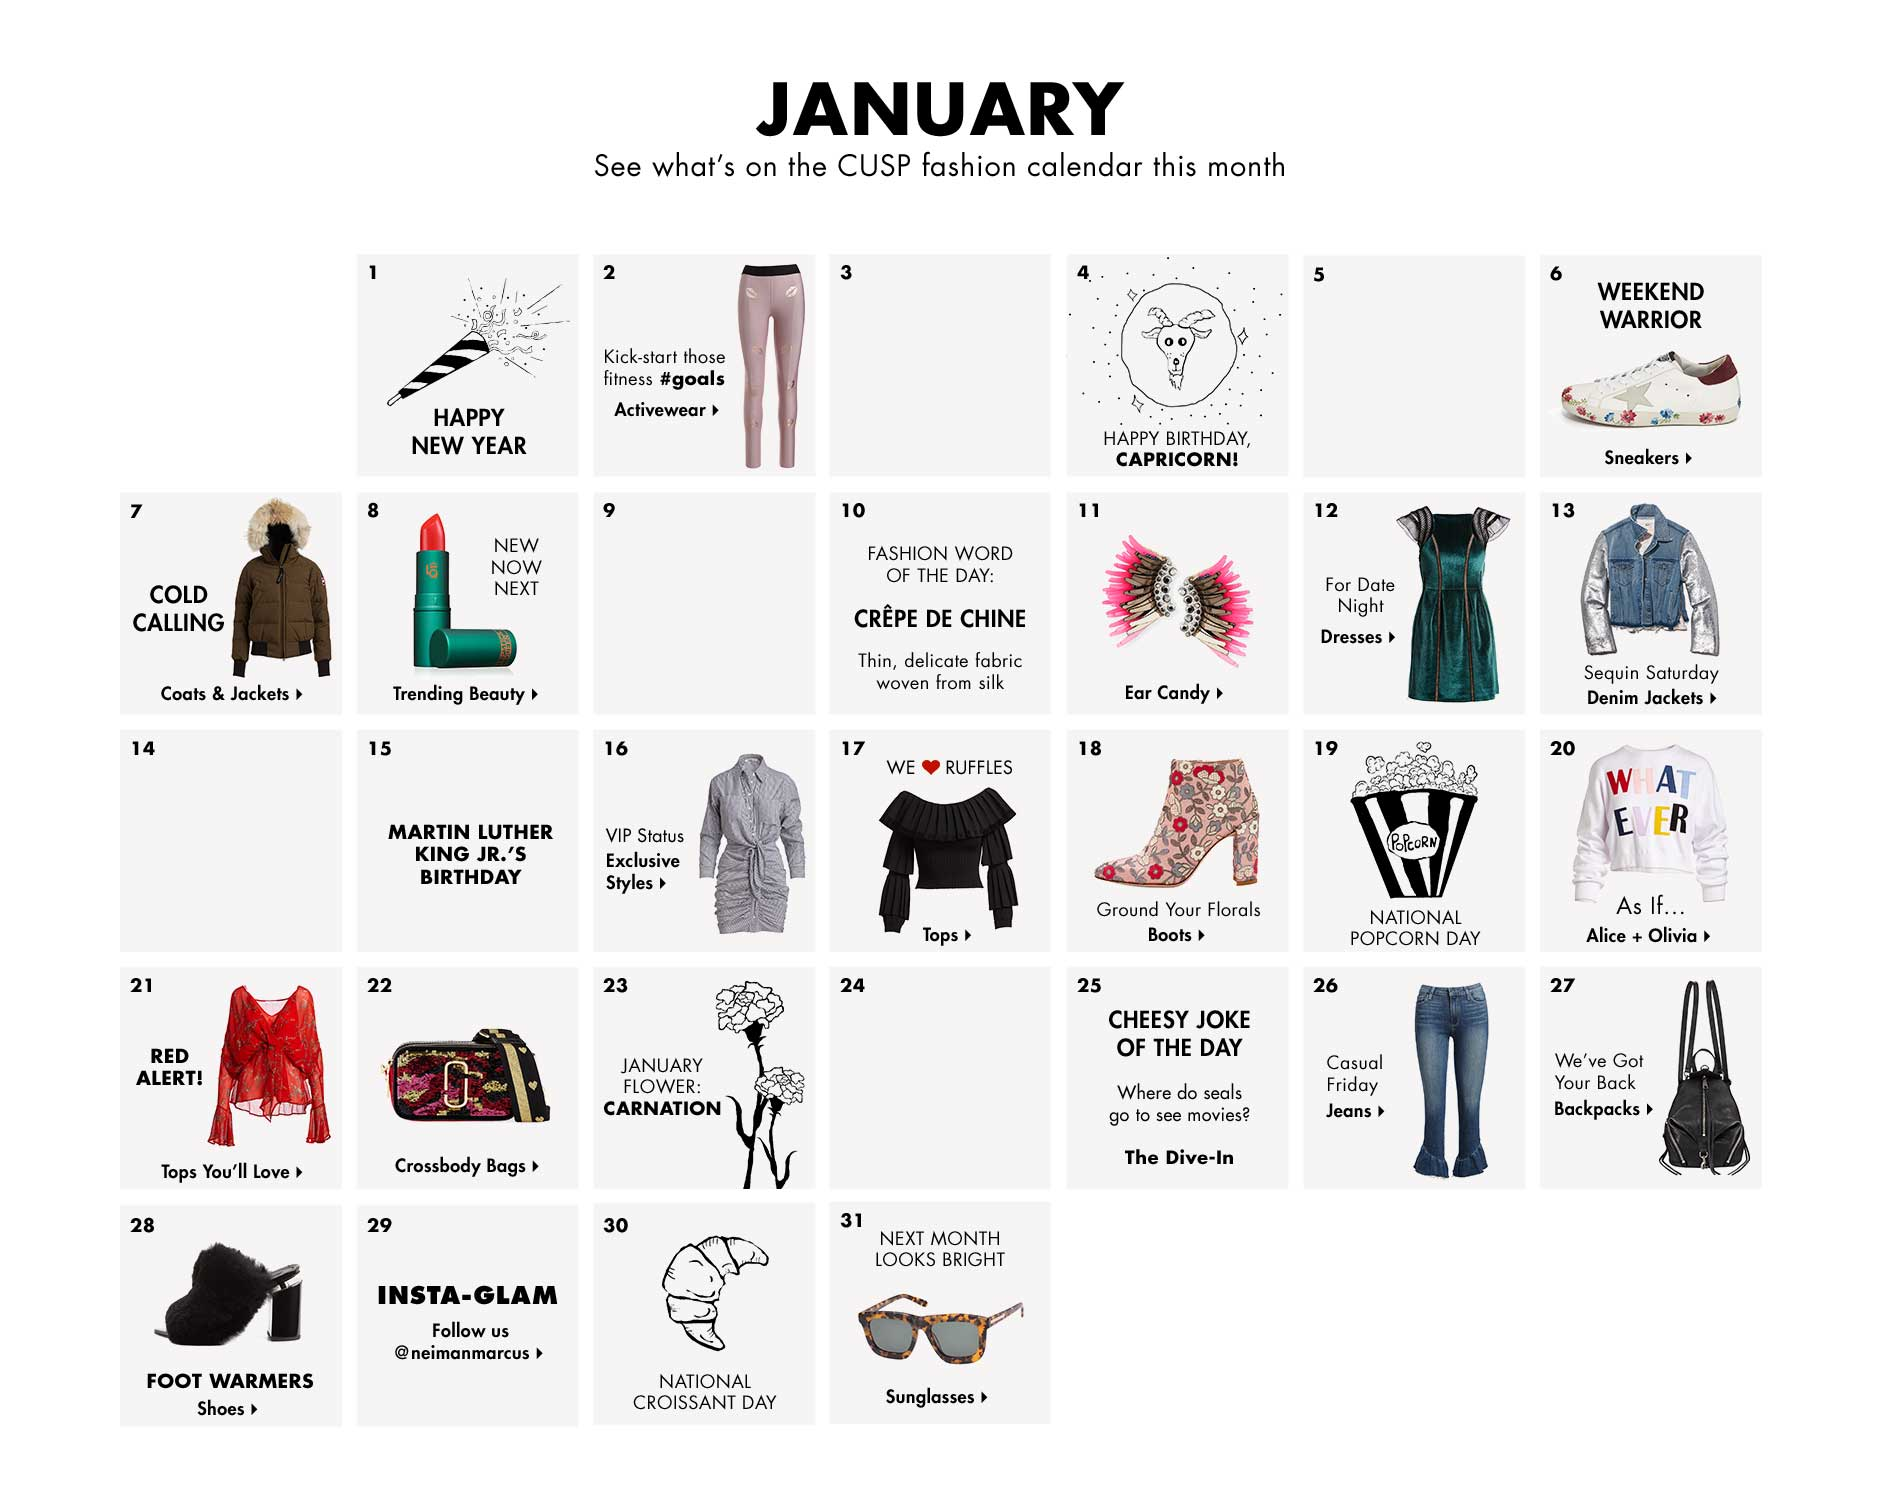 January - See what's on the CUSP fashion calendar this month